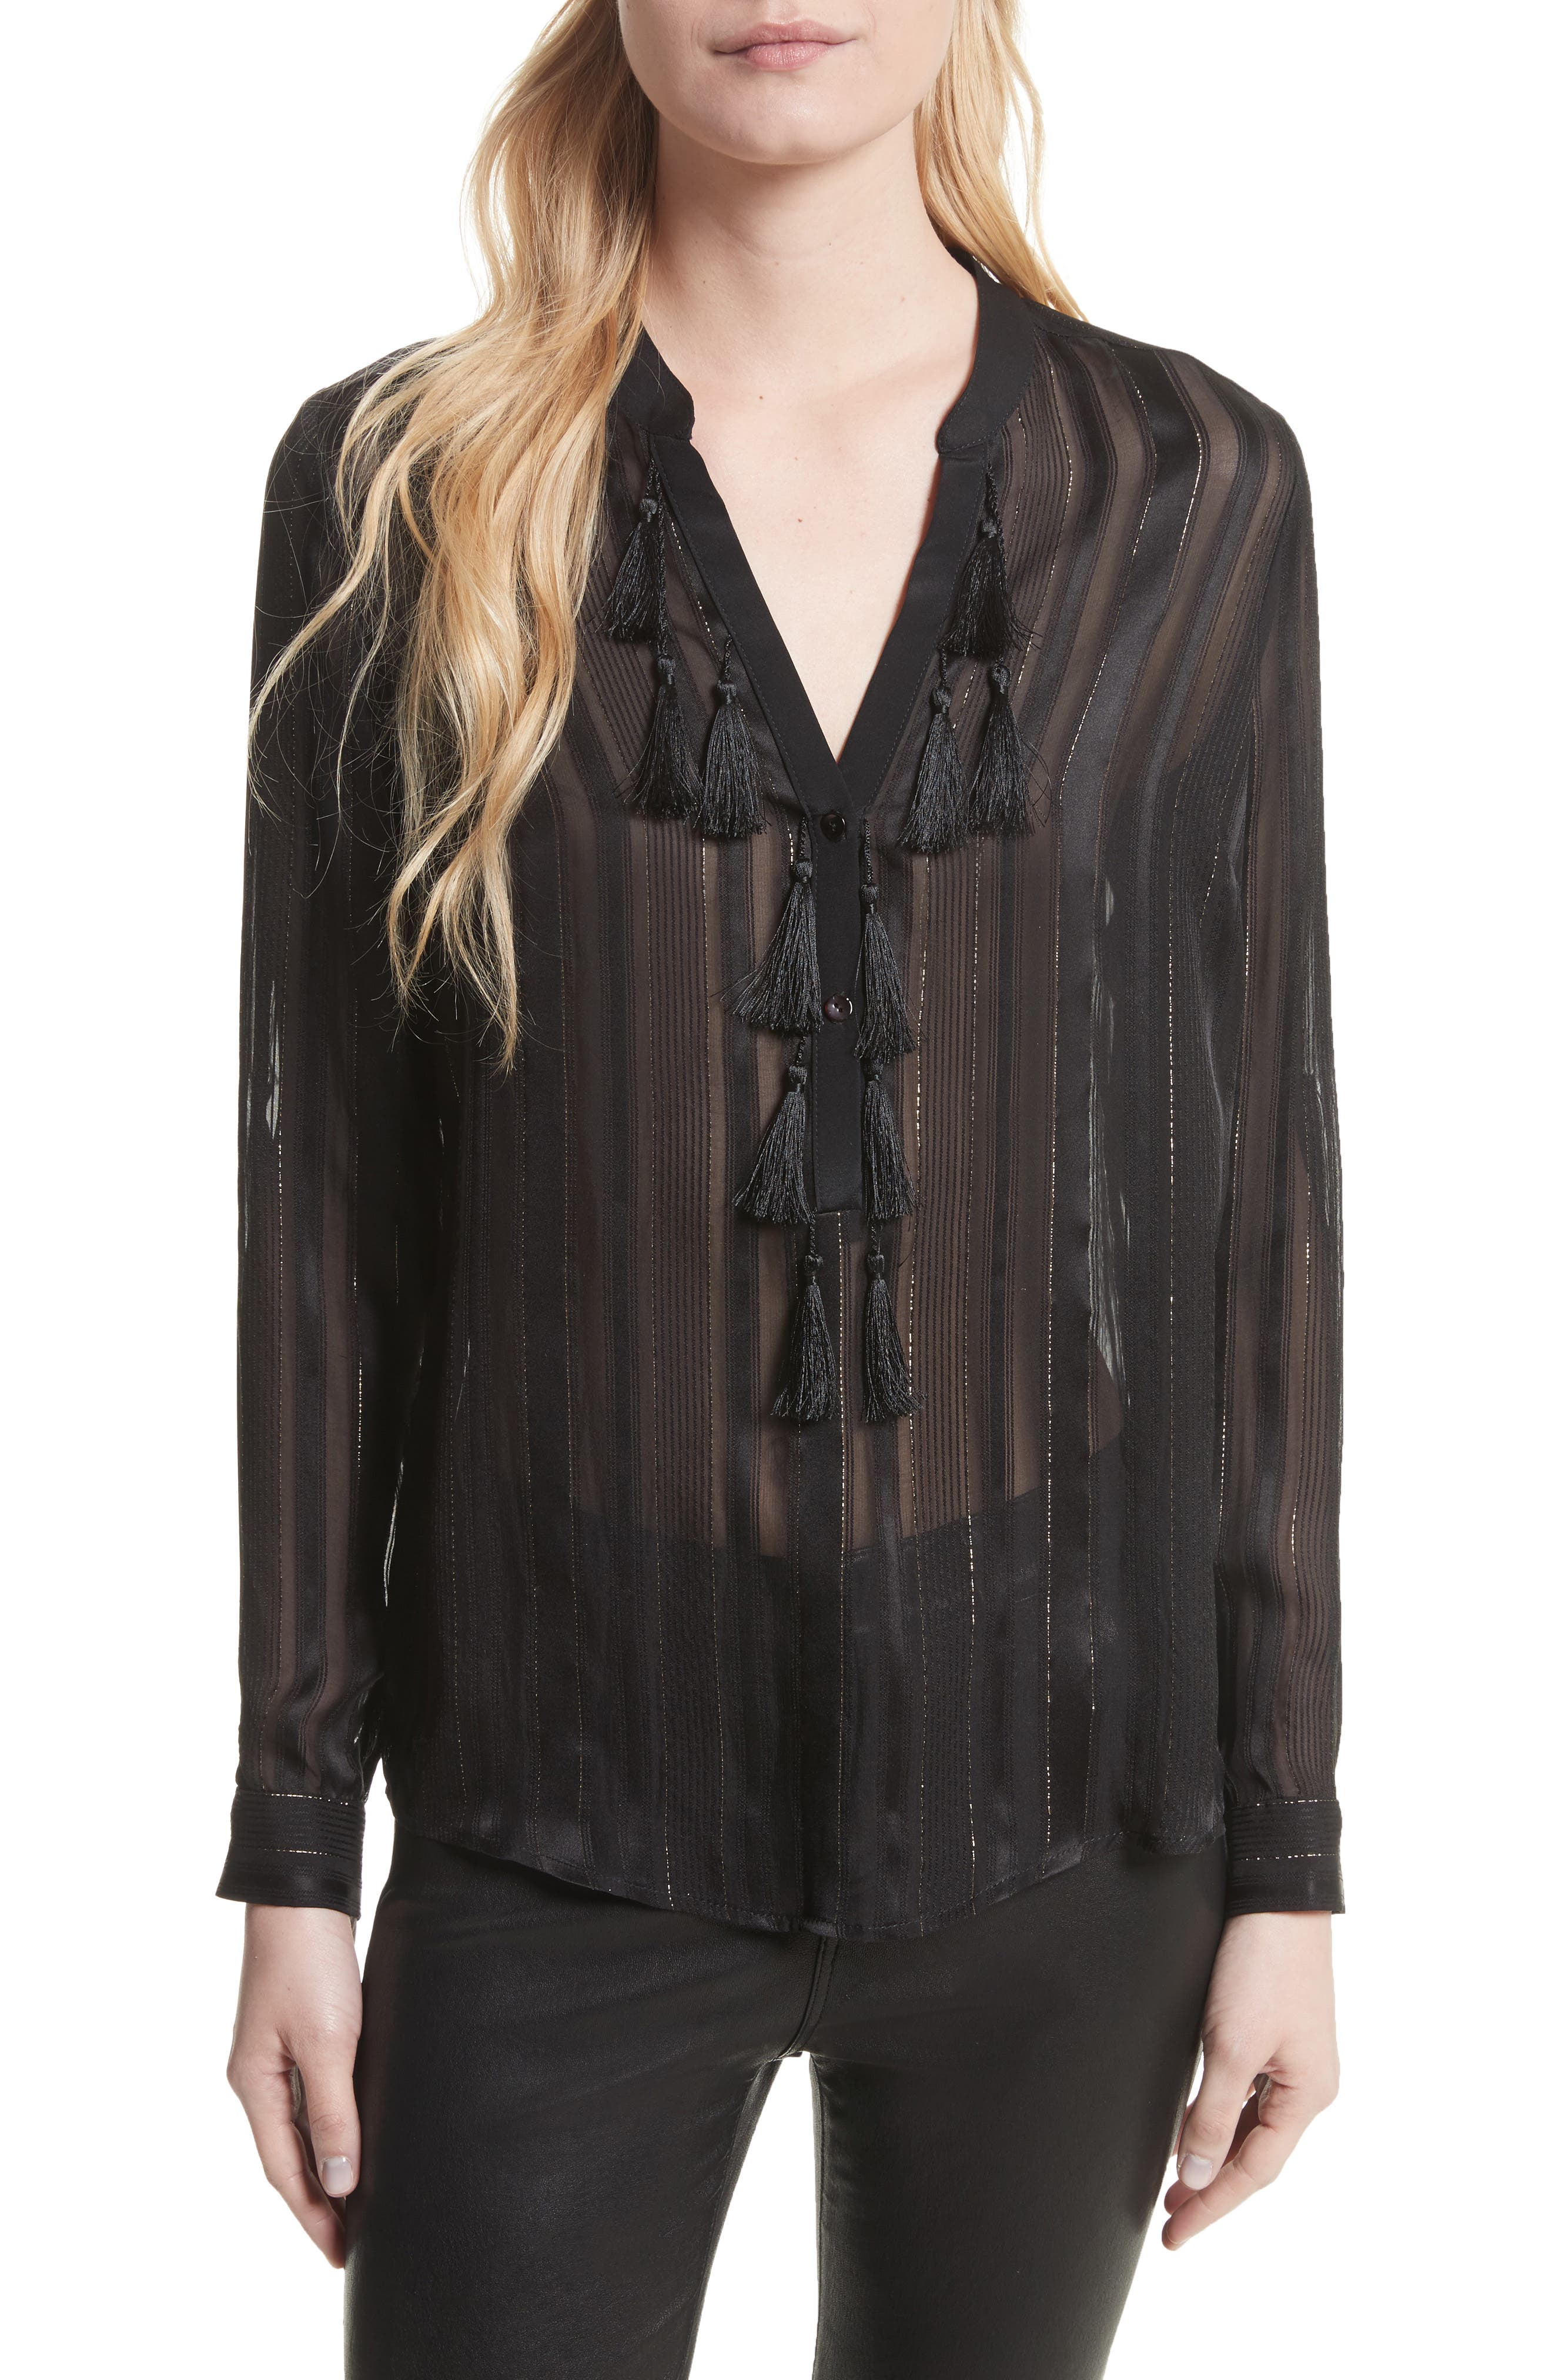 Nadja Tassel Blouse,                             Main thumbnail 1, color,                             Black/ Gold